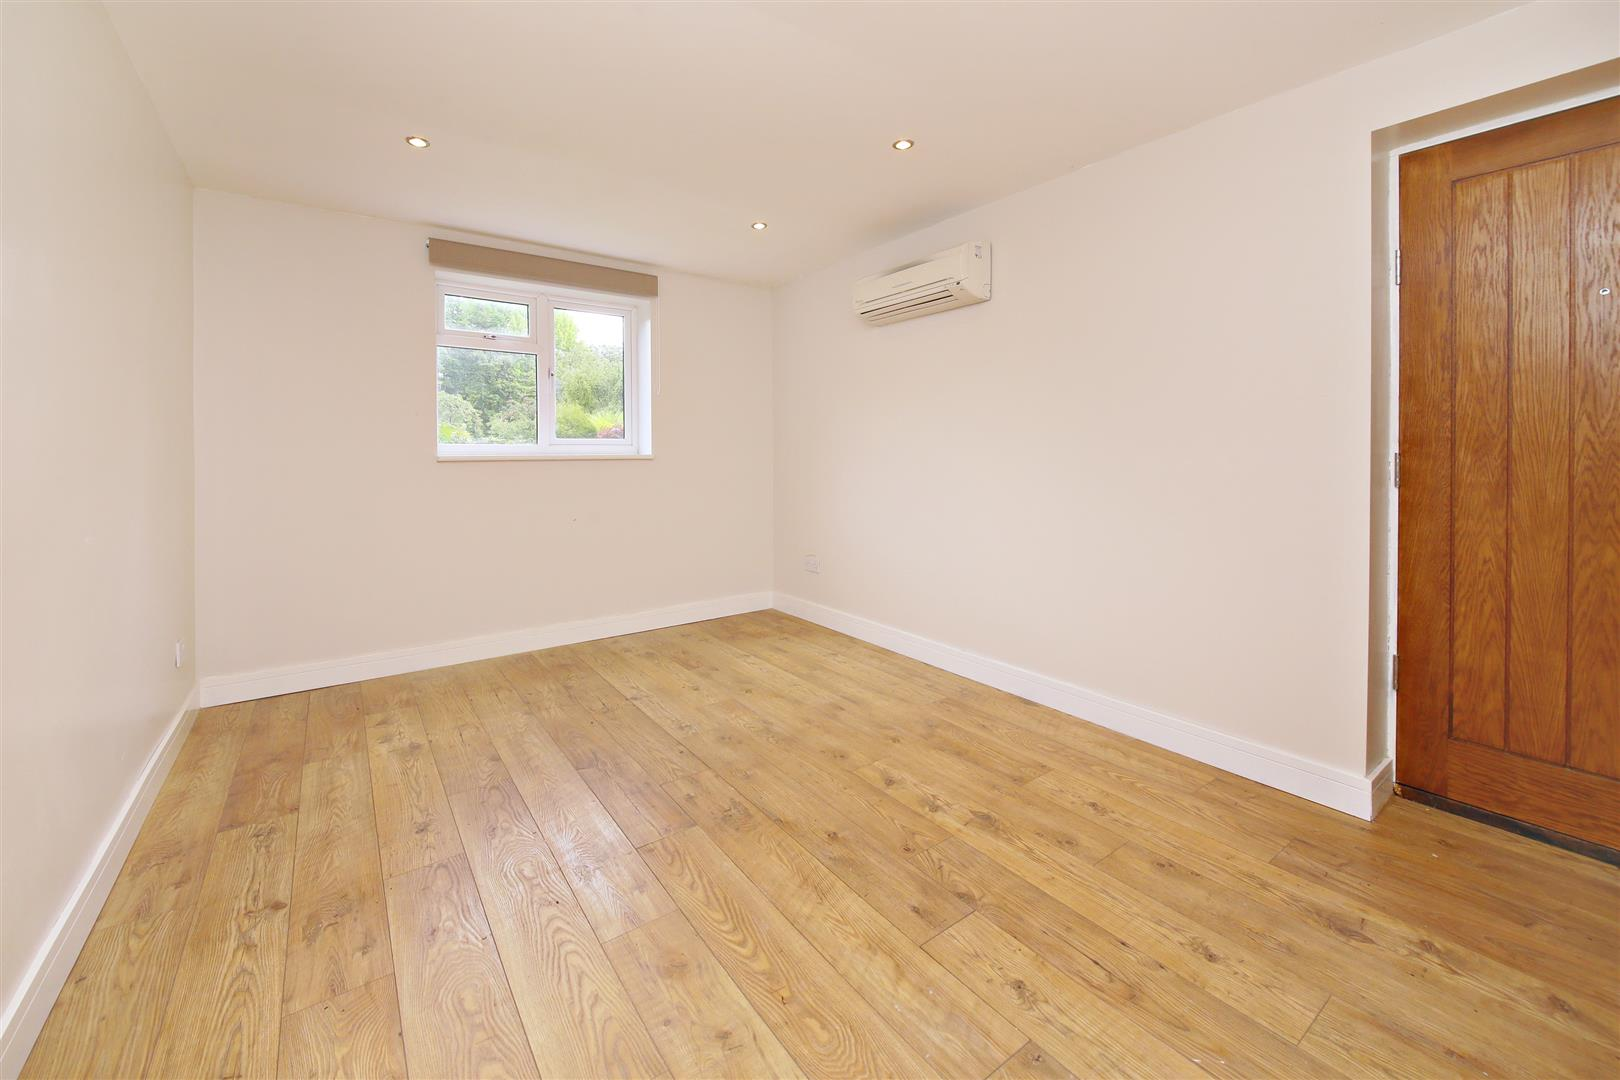 3 bed for sale in Station Road, Bricket Wood - (Property Image 10)